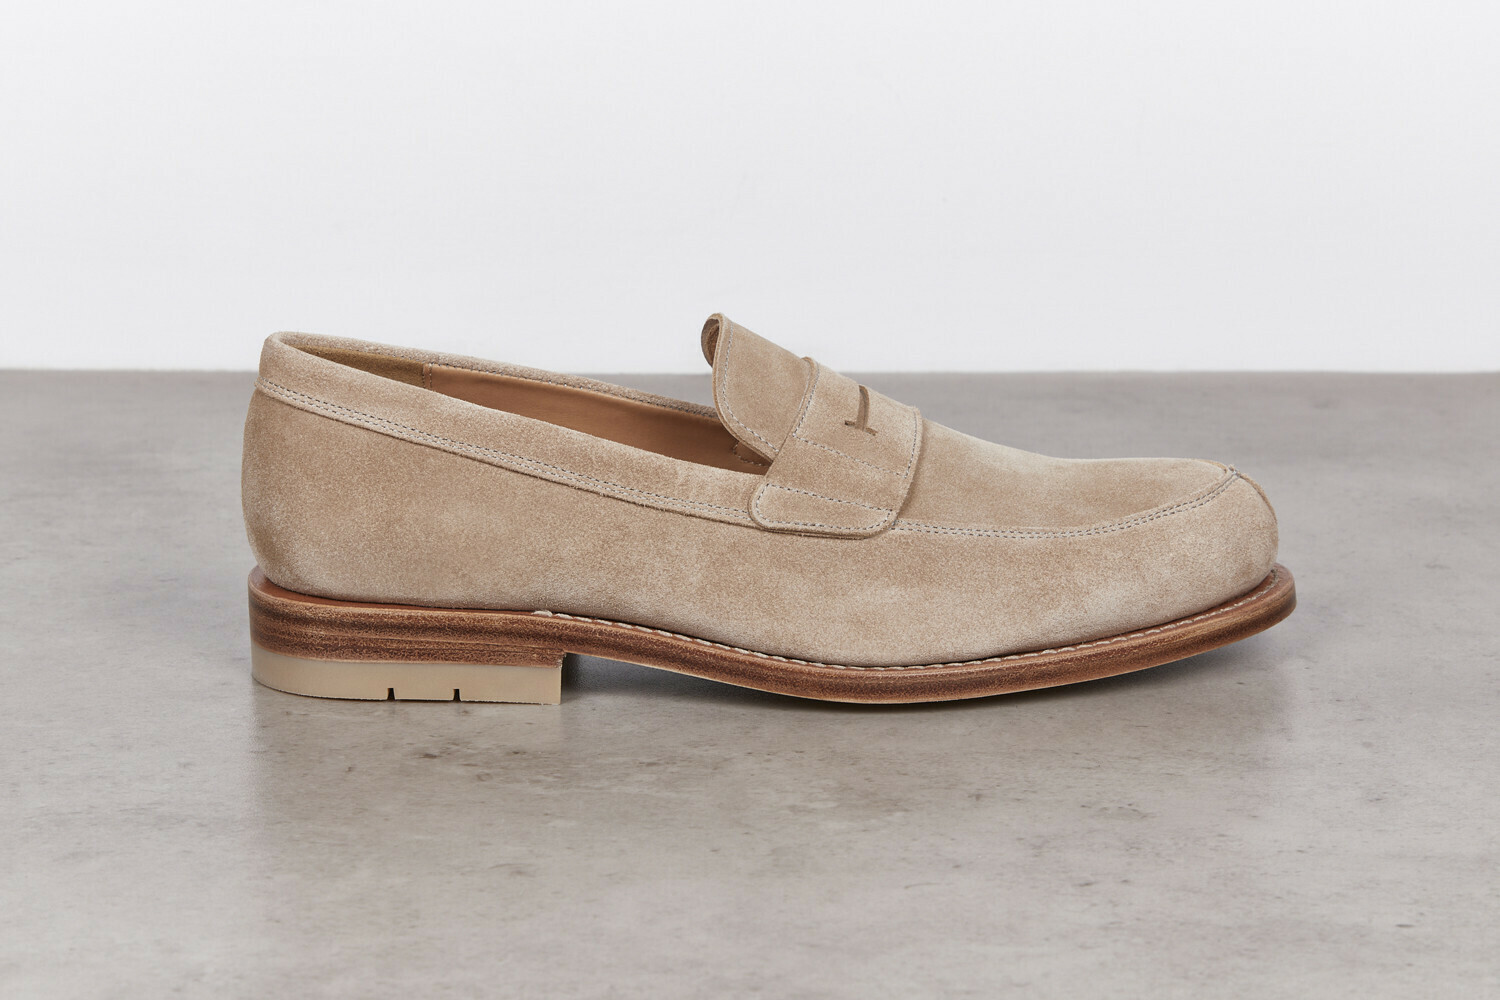 LILIUM Corde Calf Suede Leather